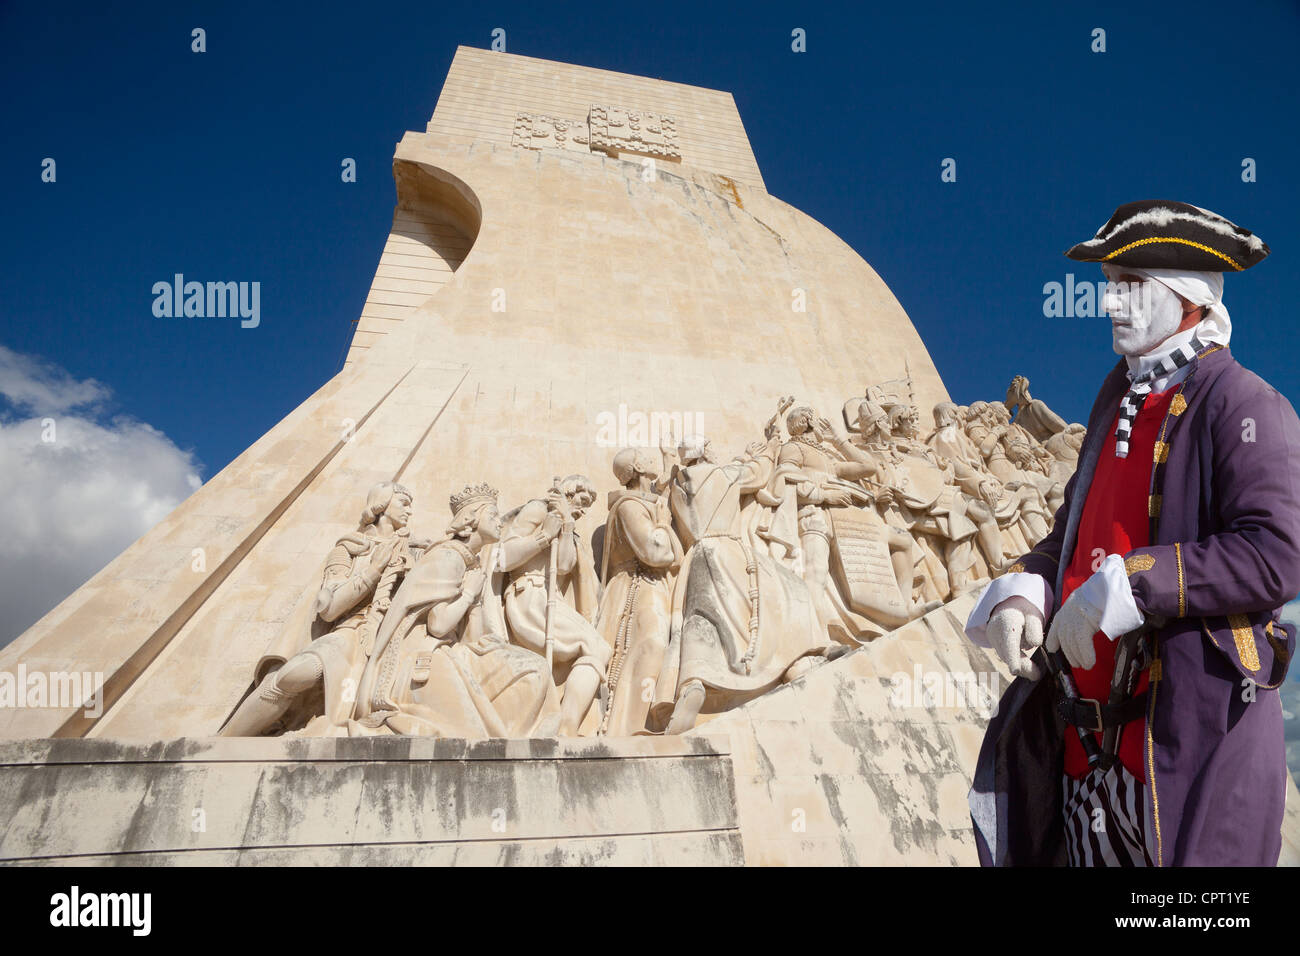 Monument to the Discoveries and man in period costume, Lisbon, Portugal - Stock Image